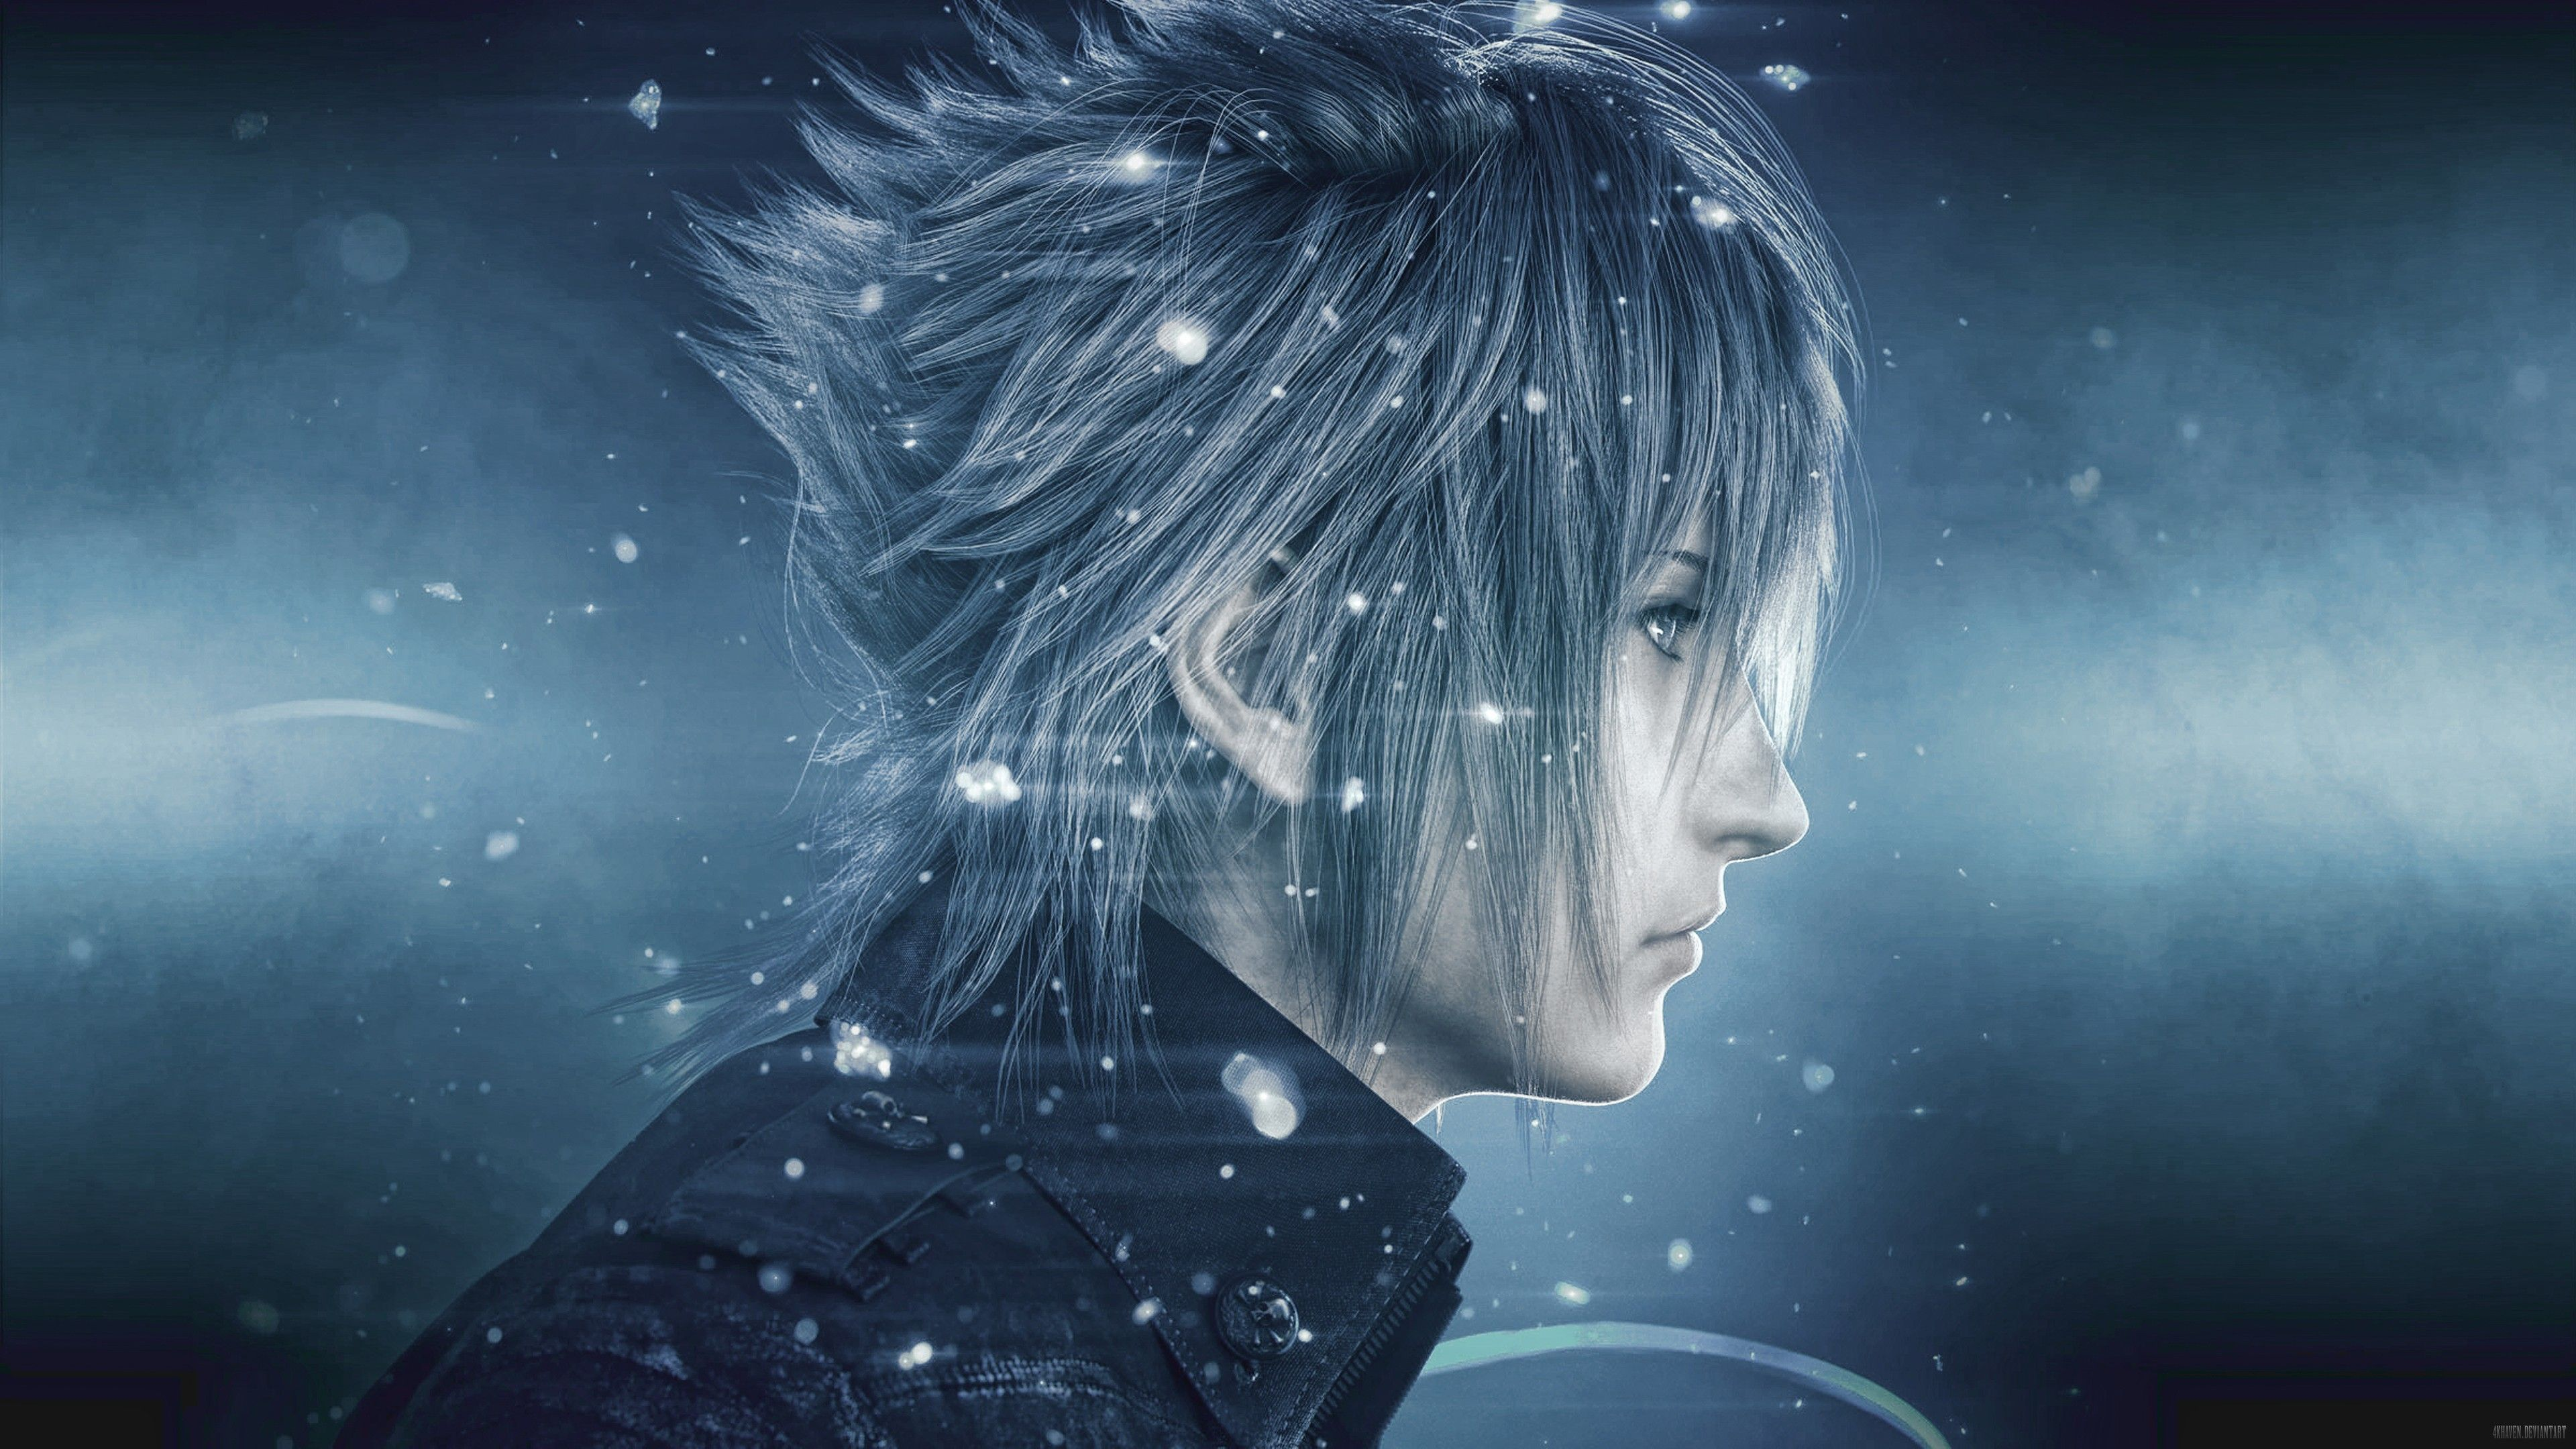 Final Fantasy Xv 4k Wallpapers: Final Fantasy XV Noctis, HD Games, 4k Wallpapers, Images